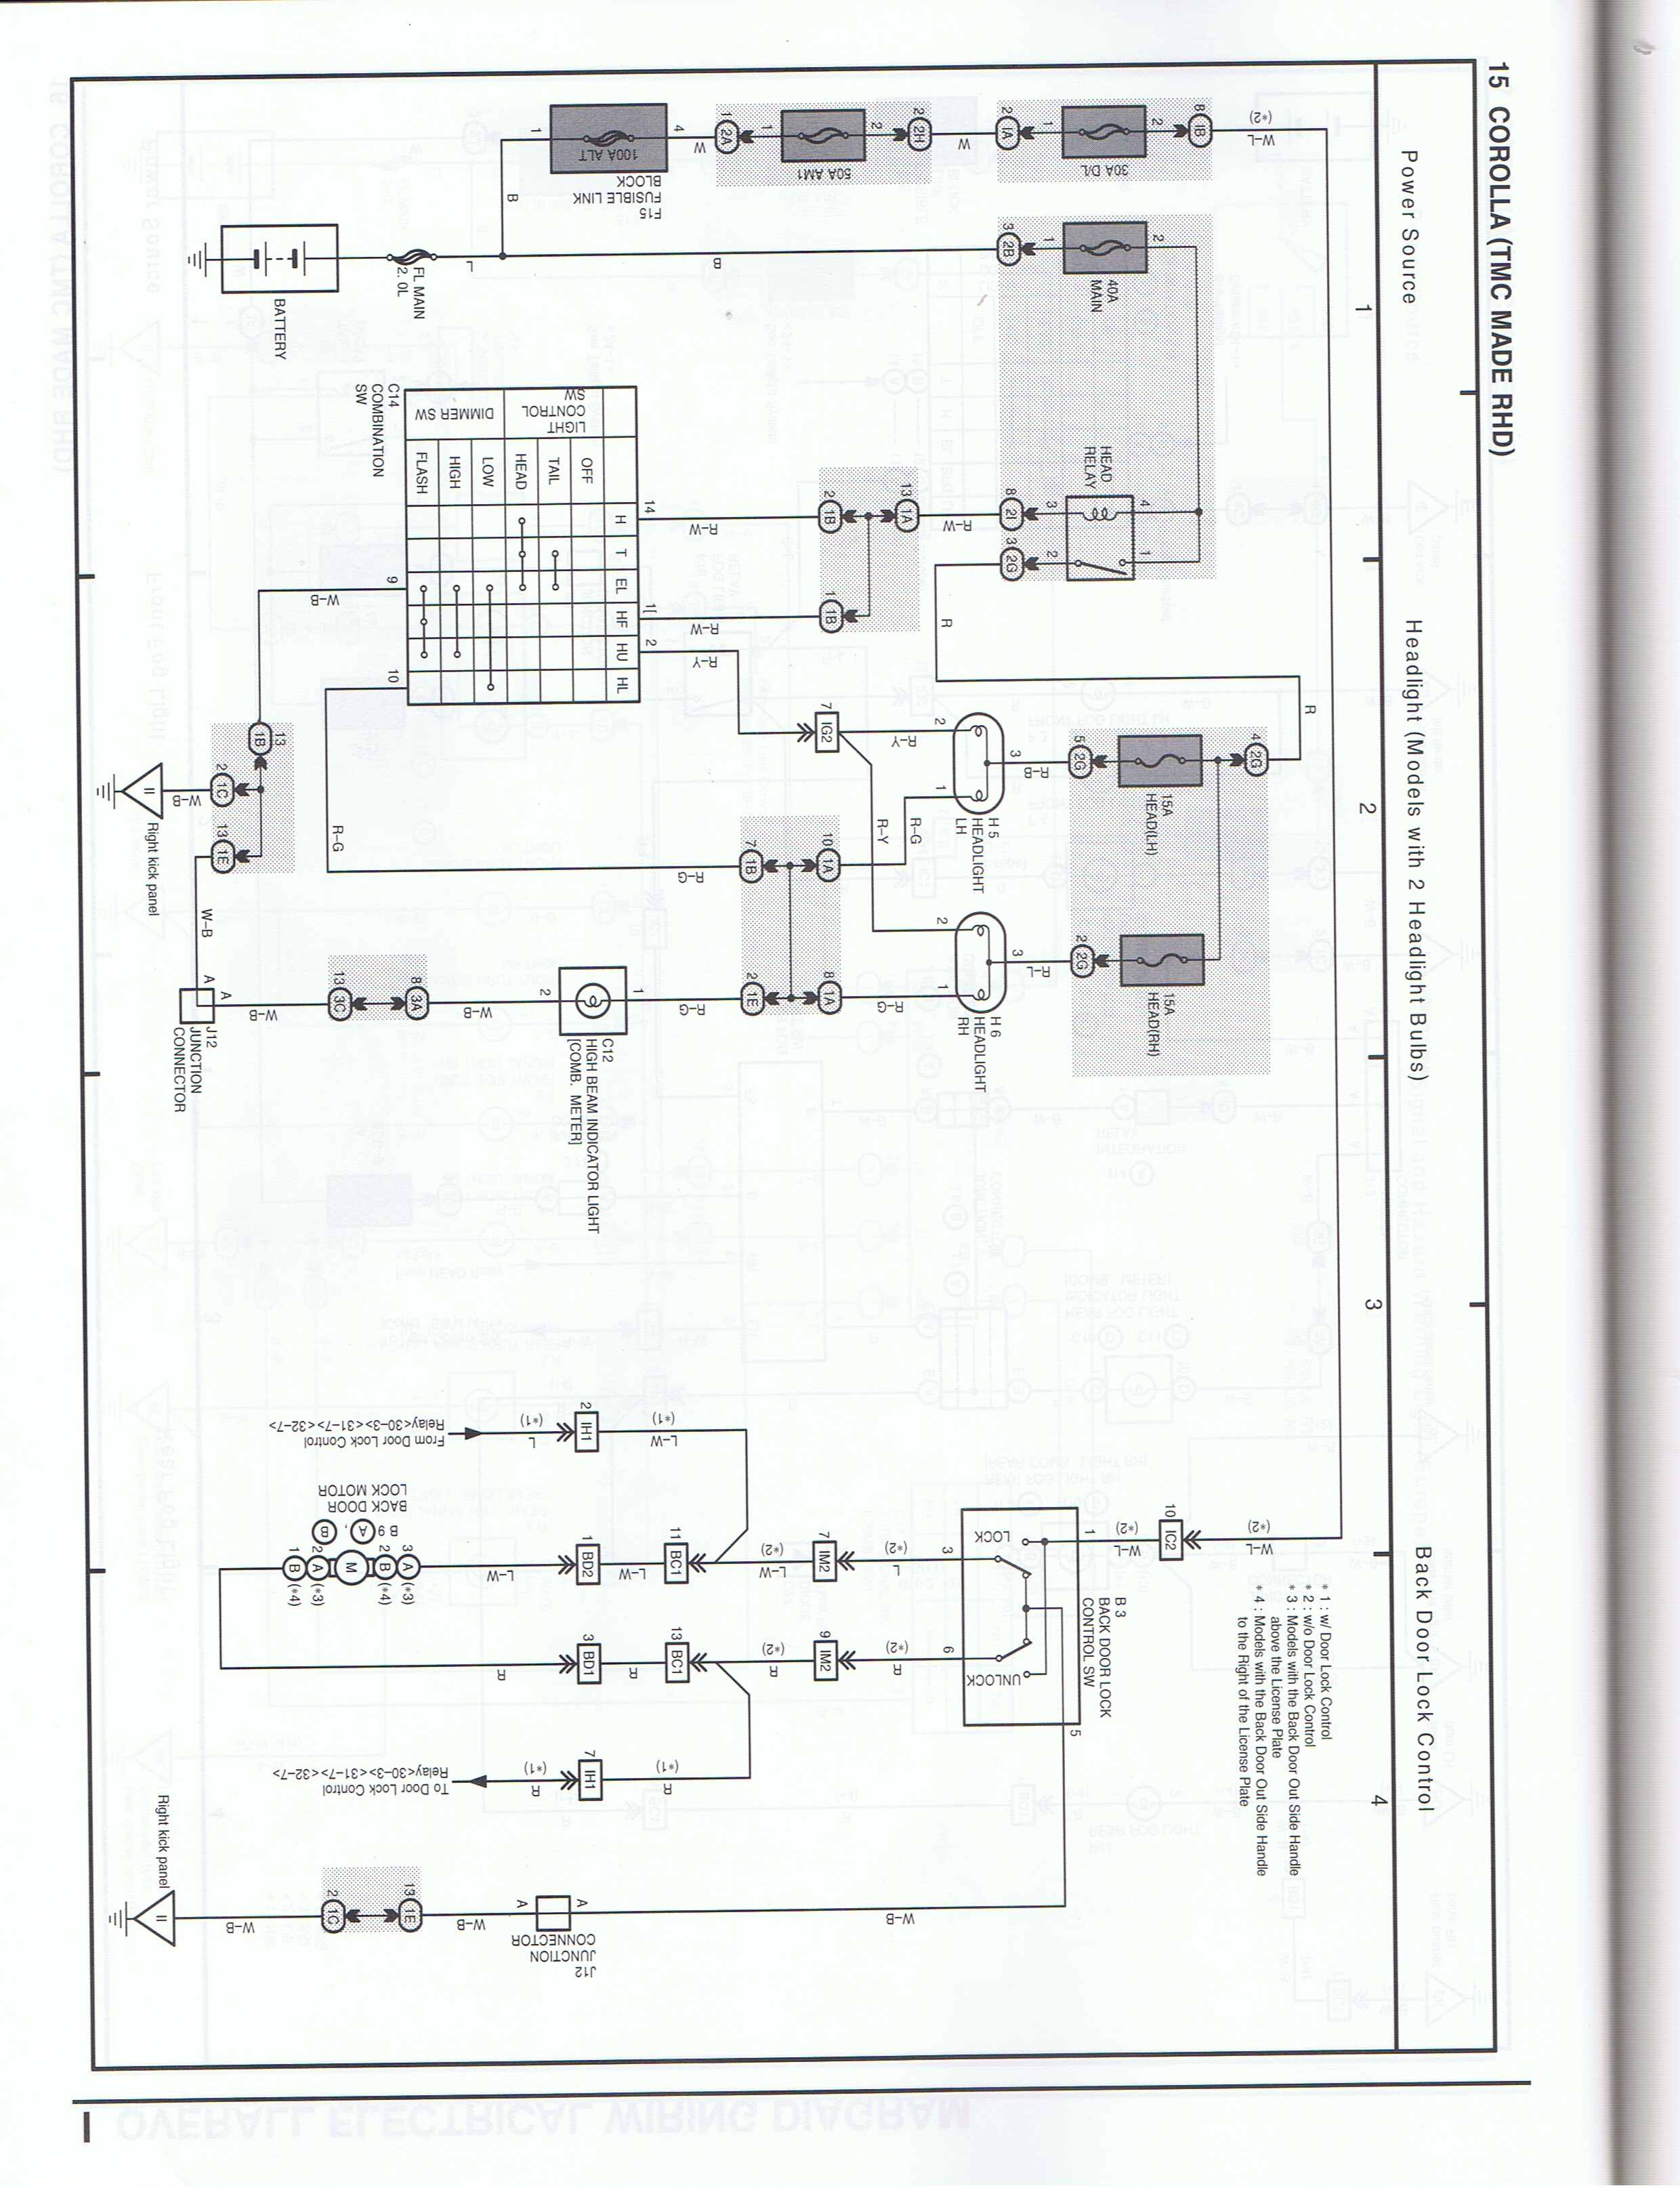 [WQZT_9871]  ☑ 2002 Acura Rsx Wiring Diagrams HD Quality ☑ activity-diagram .altalangaleader.it | 2006 Acura Rsx Wiring Diagram |  | Diagram Database